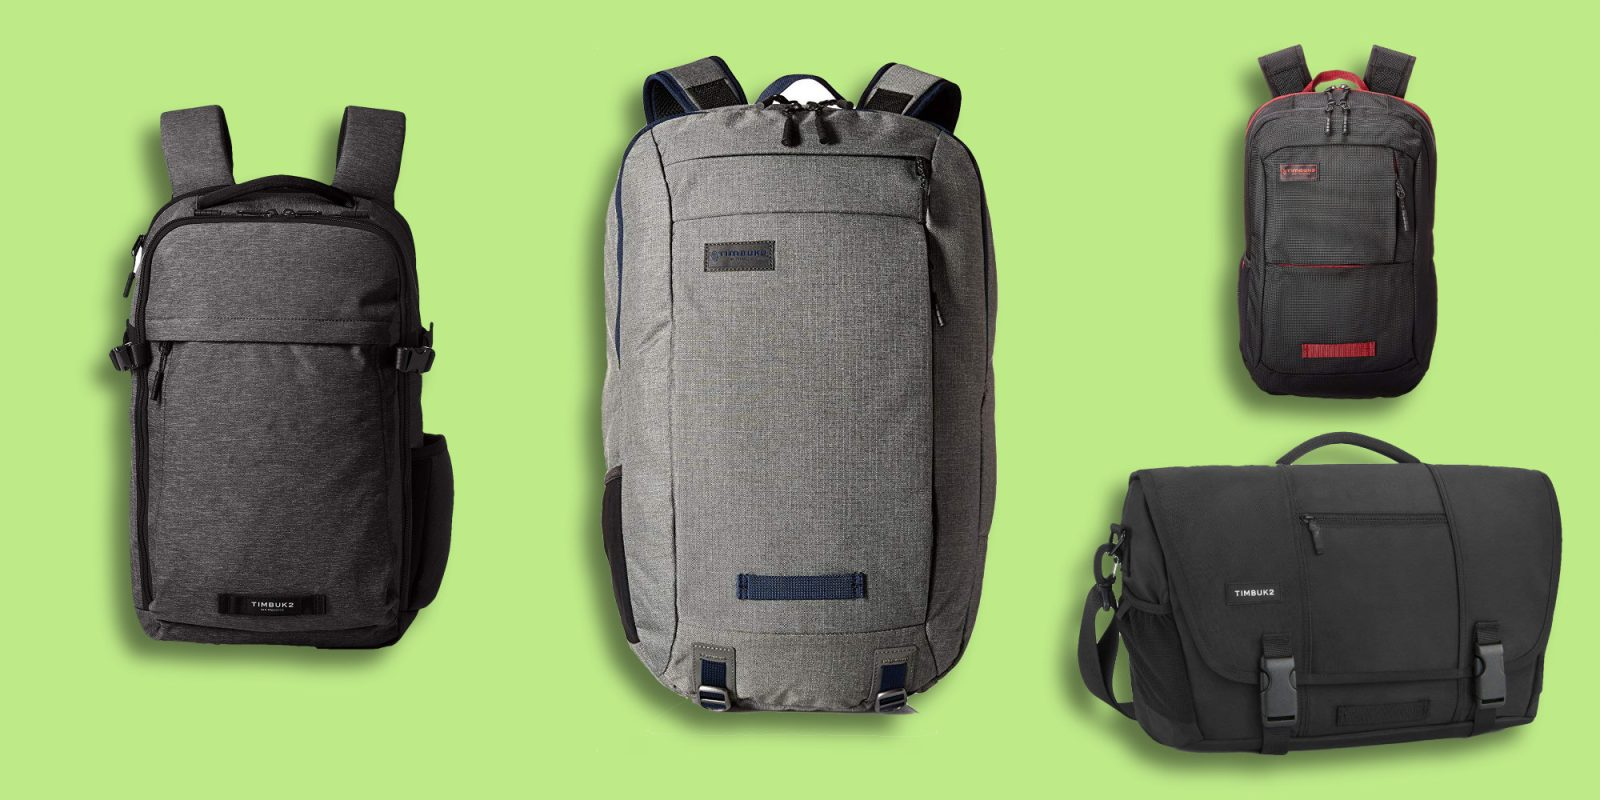 Prime Day cuts up to 40% off Timbuk2 MacBook bags, priced from $32